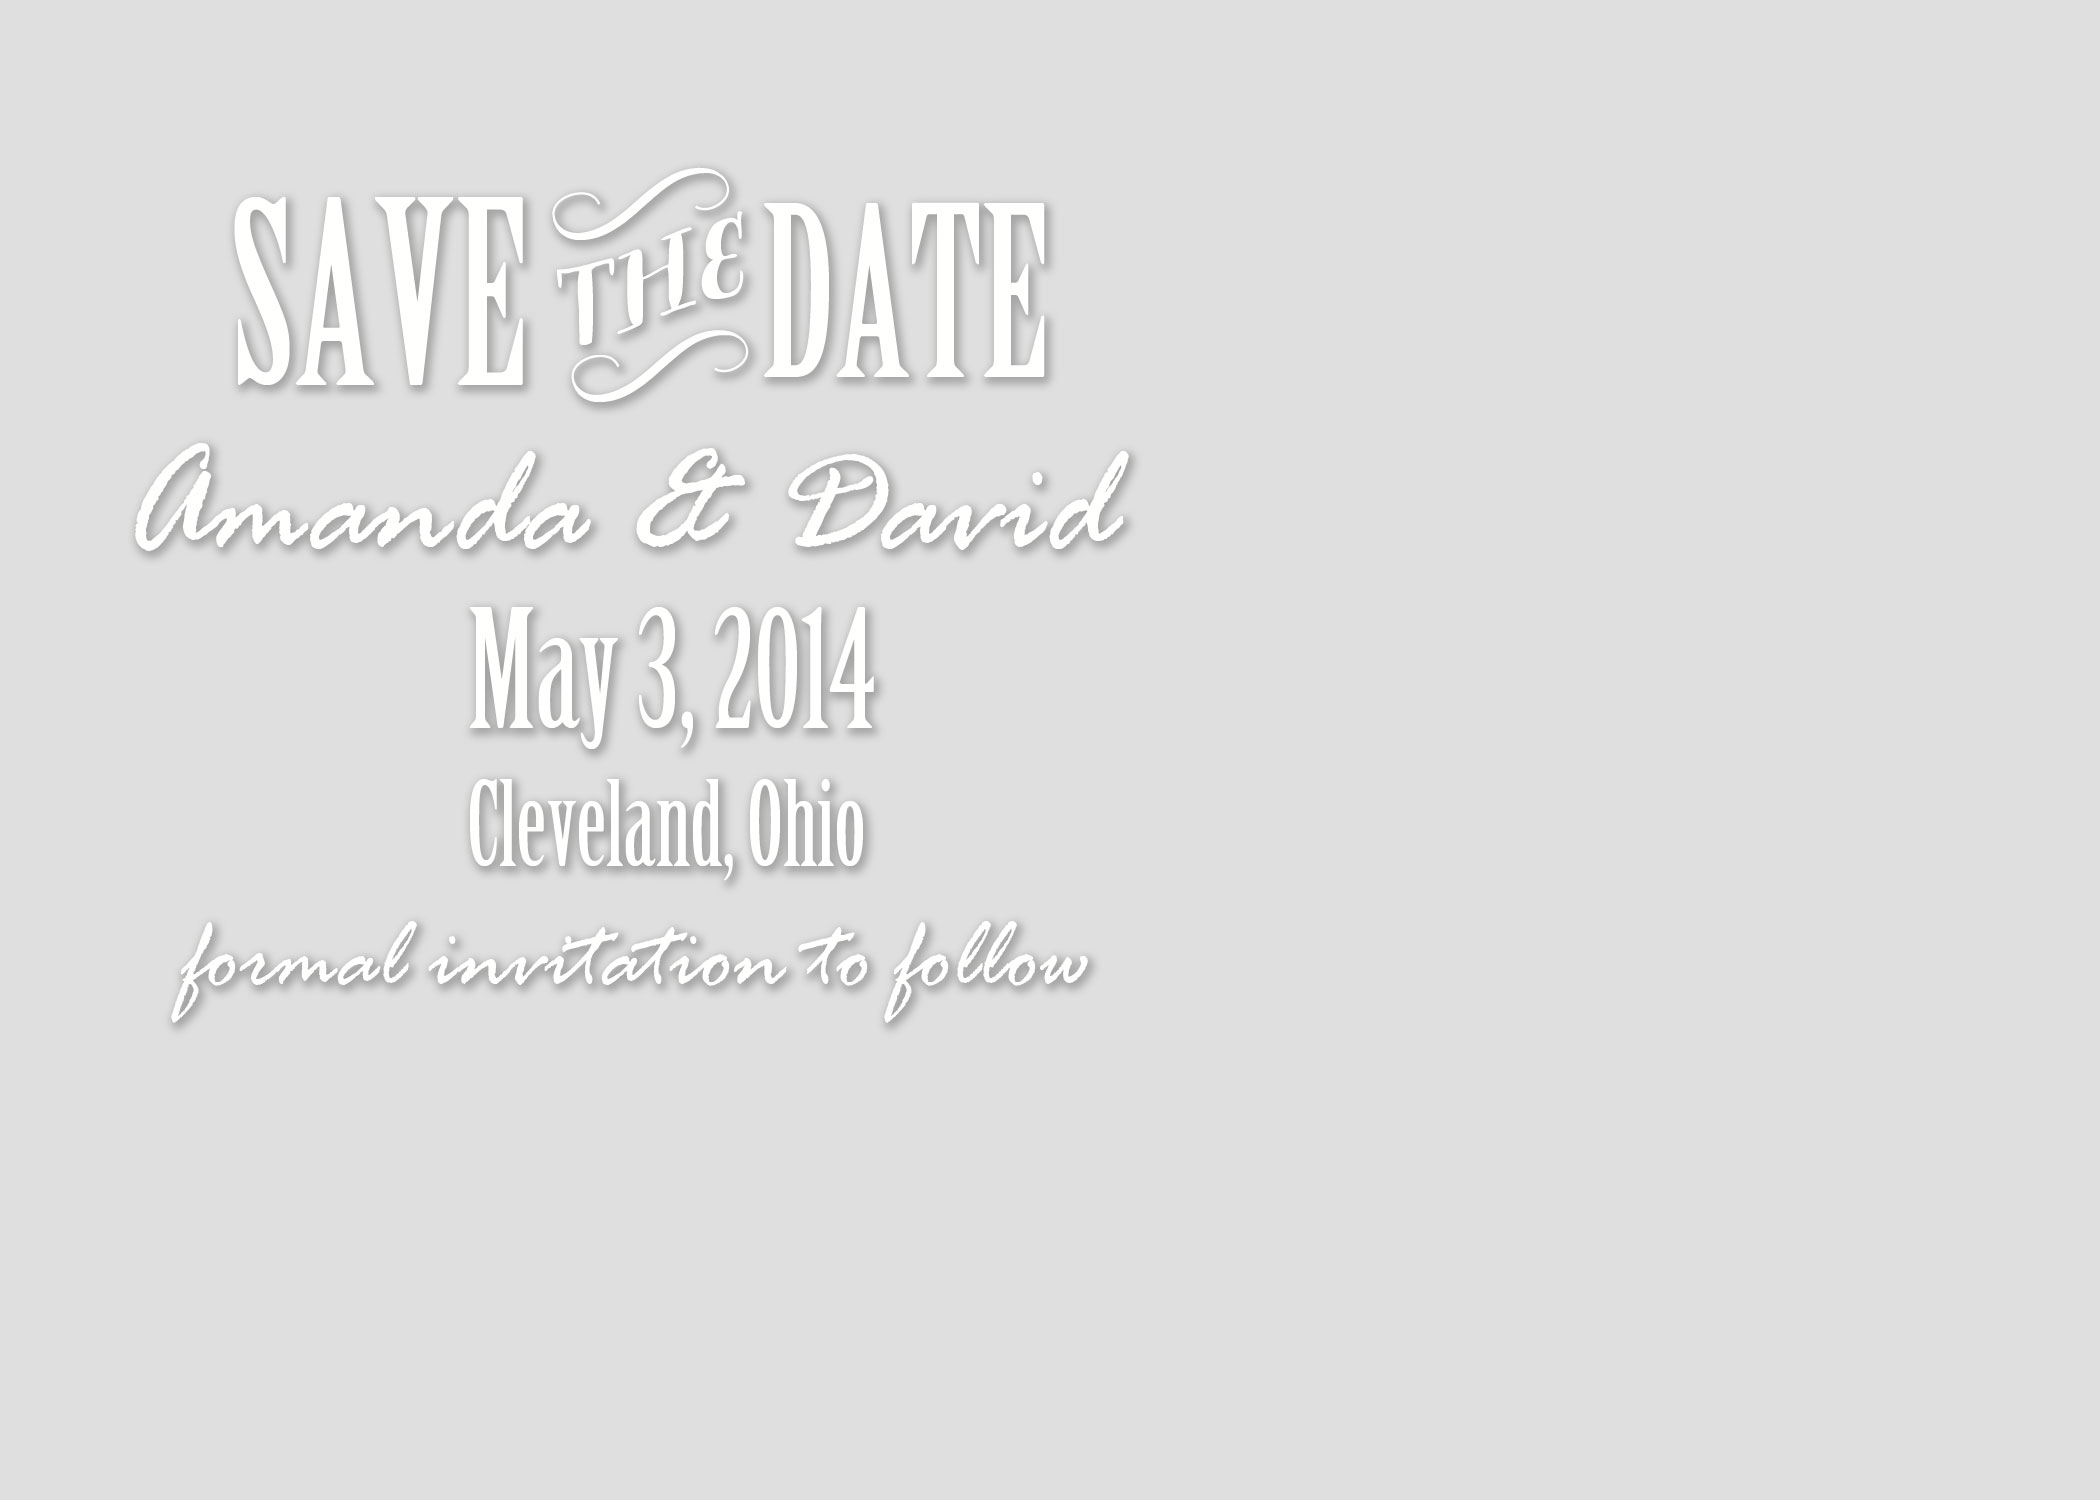 5 Save The Date Card Editable Templates for Free -